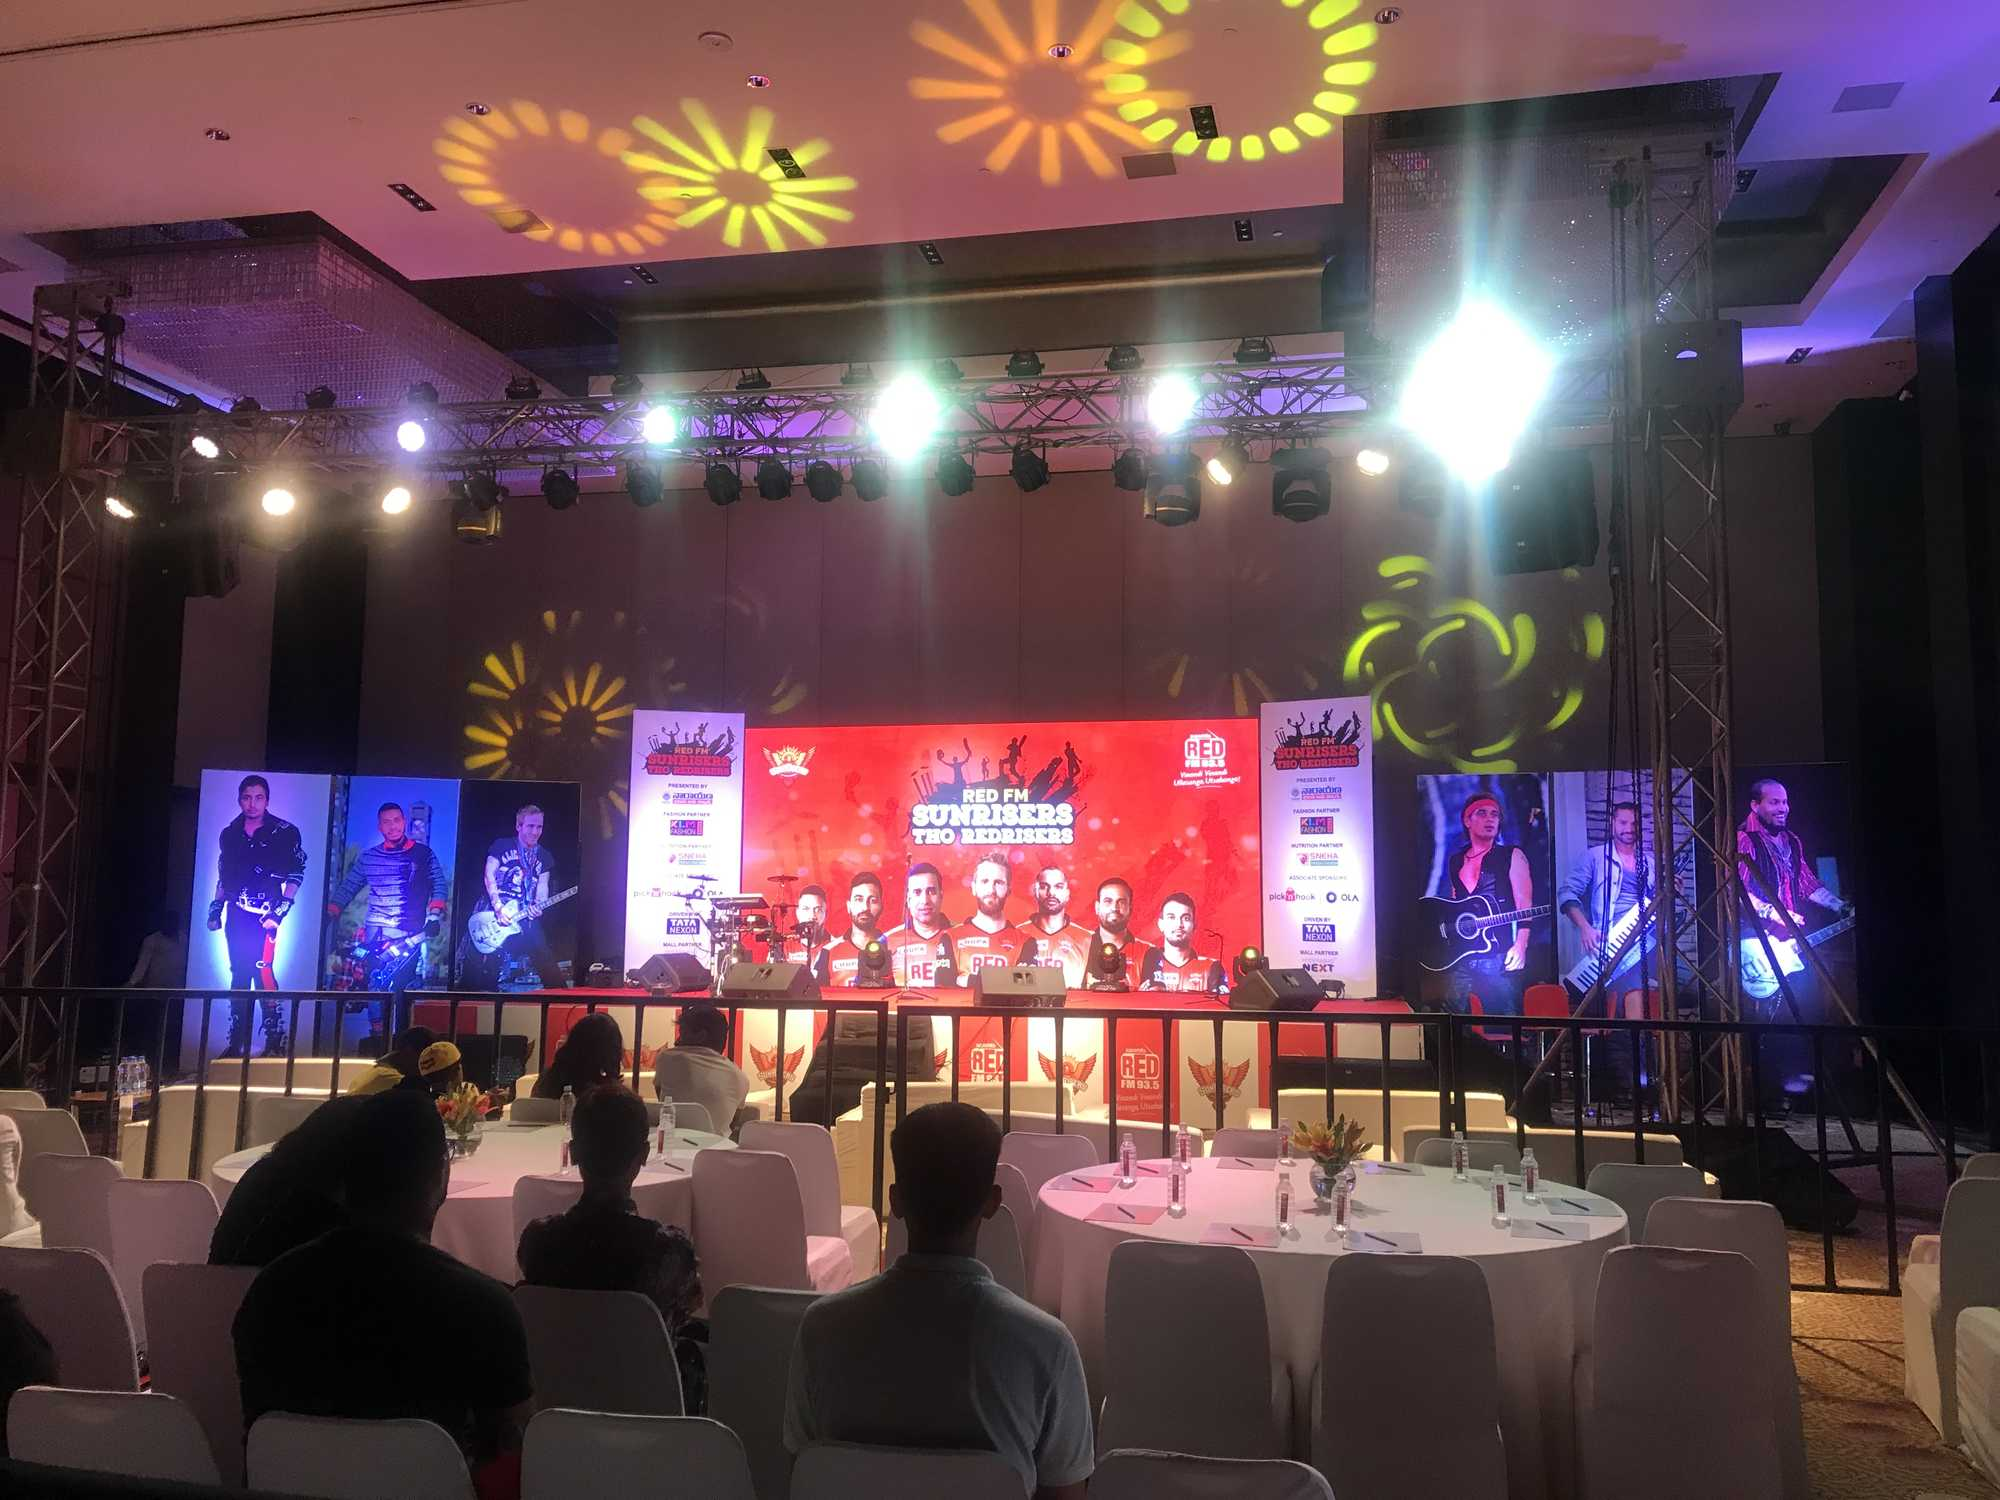 Top 10 Stage Light Truss On Hire in Hyderabad - Best Stage Lighting